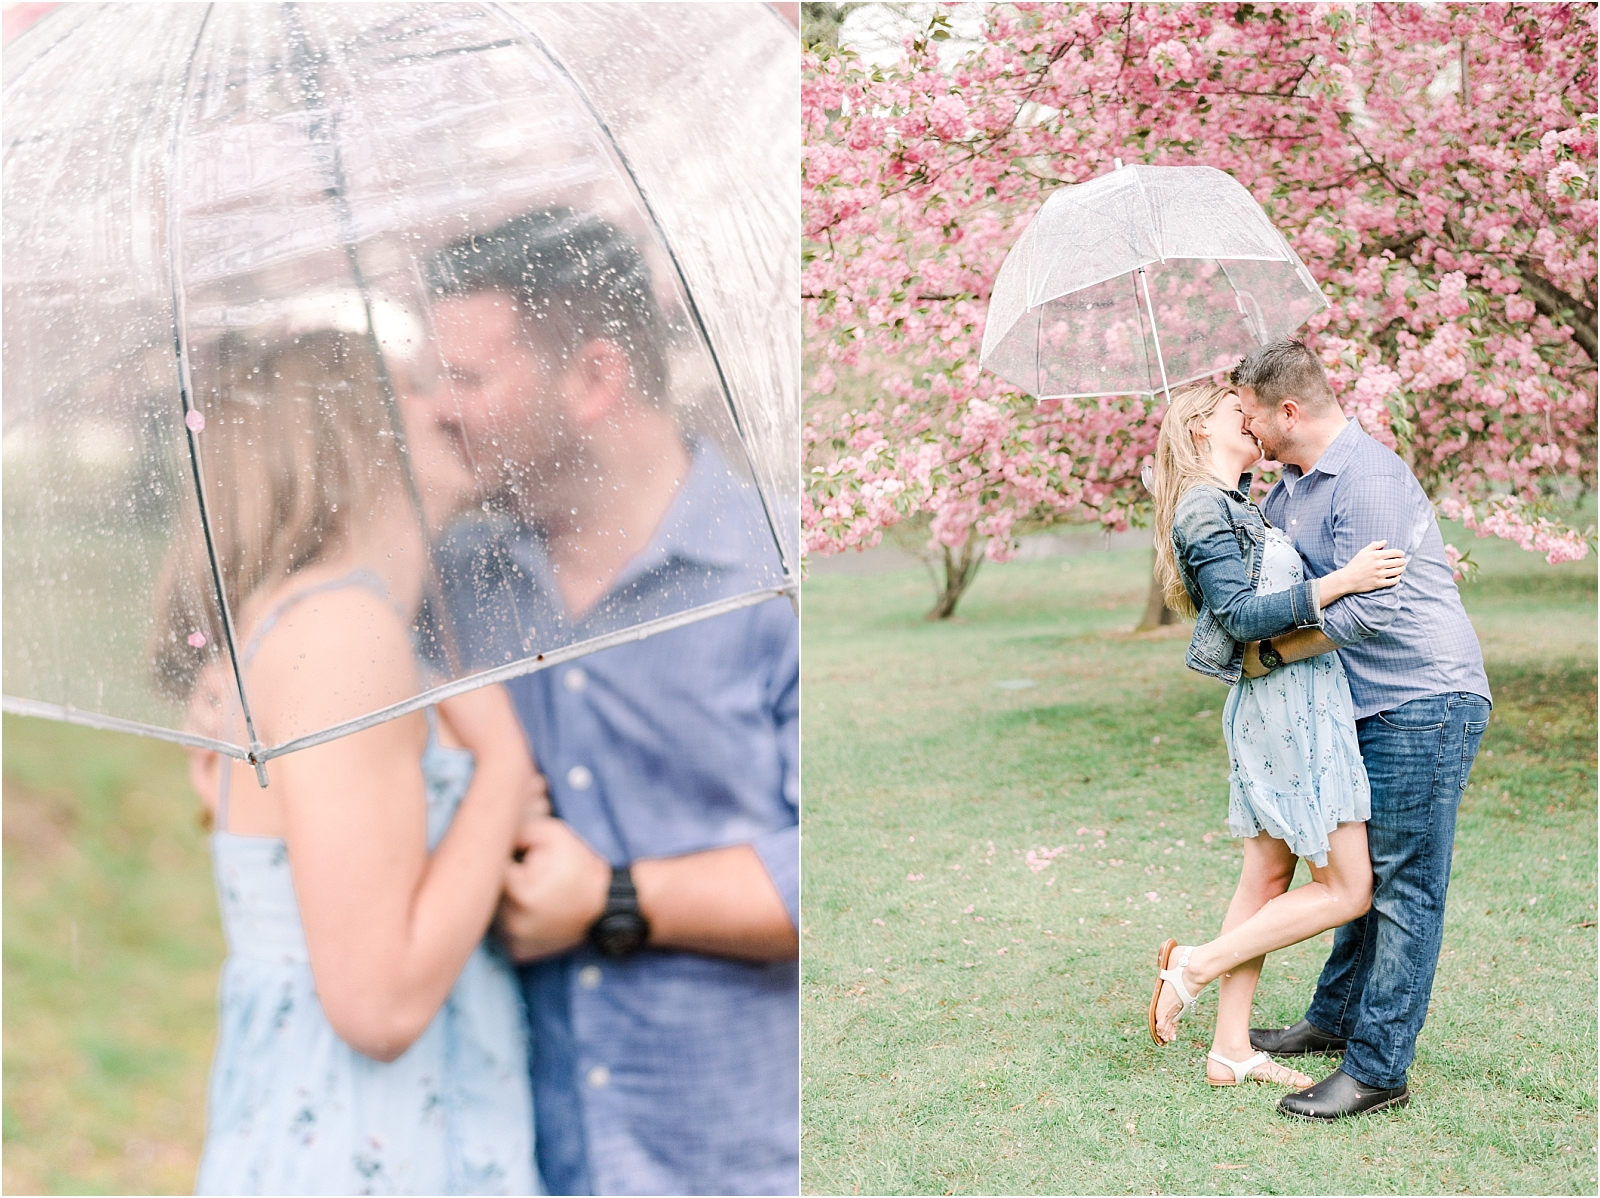 MT_branch_brook_park_engagement_session (14).jpg